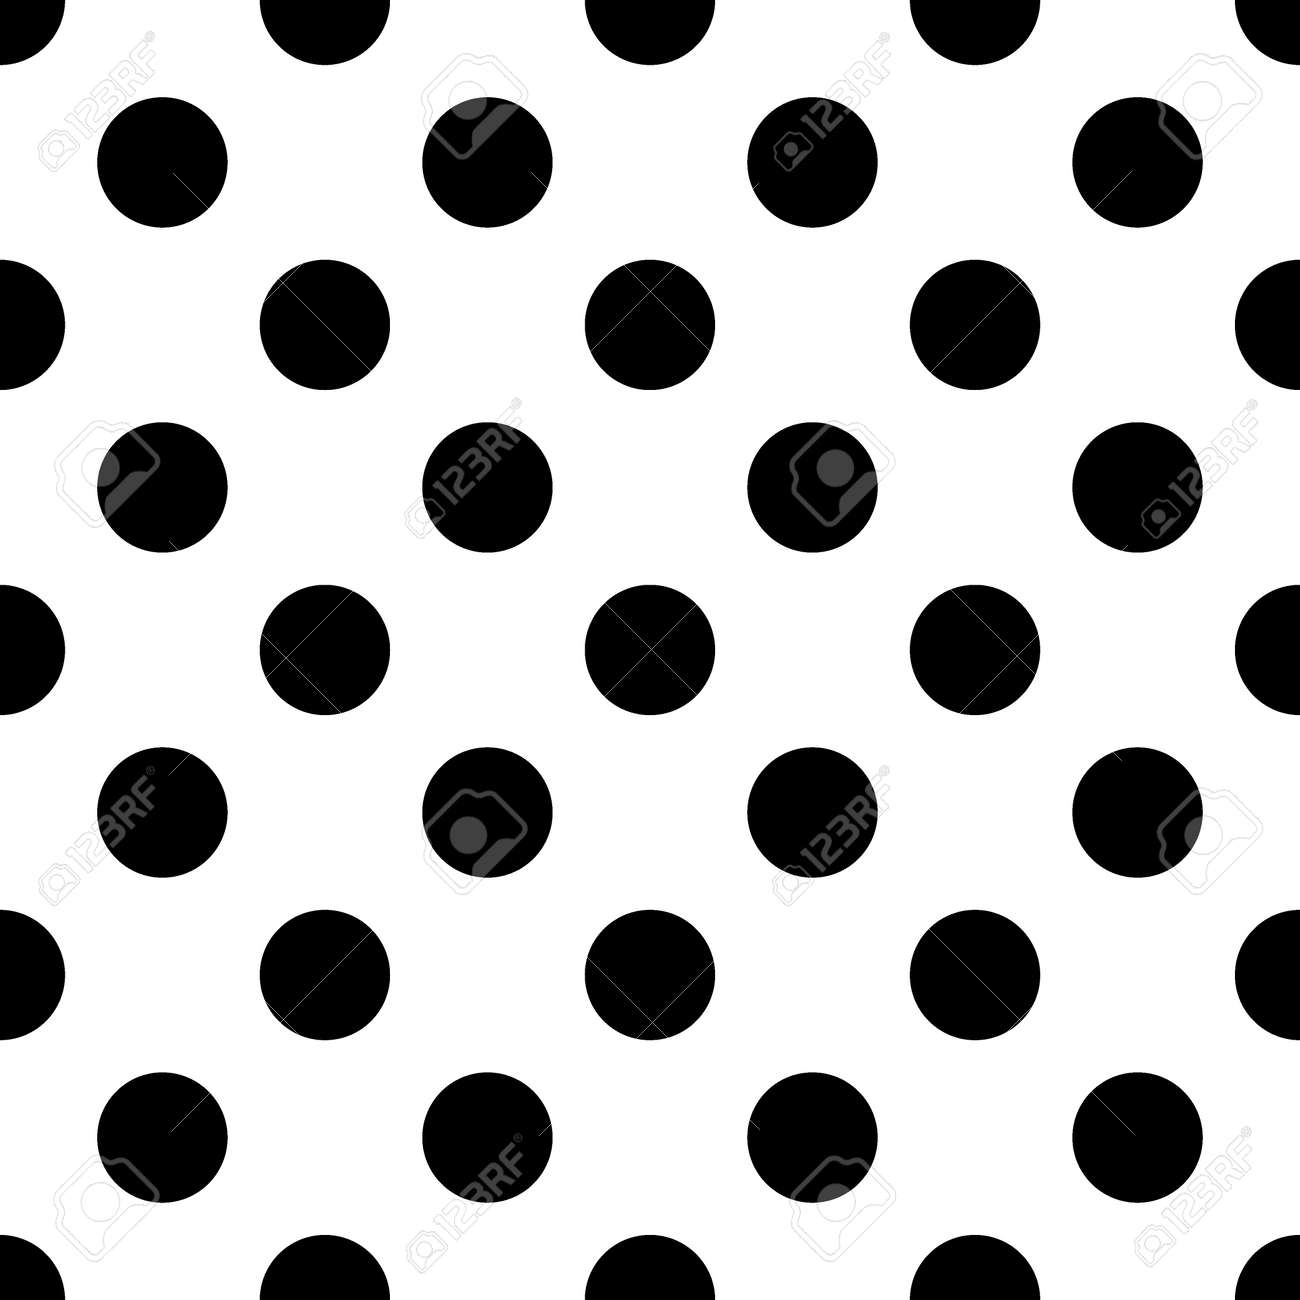 big polka dot seamless pattern abstract fashion black and white